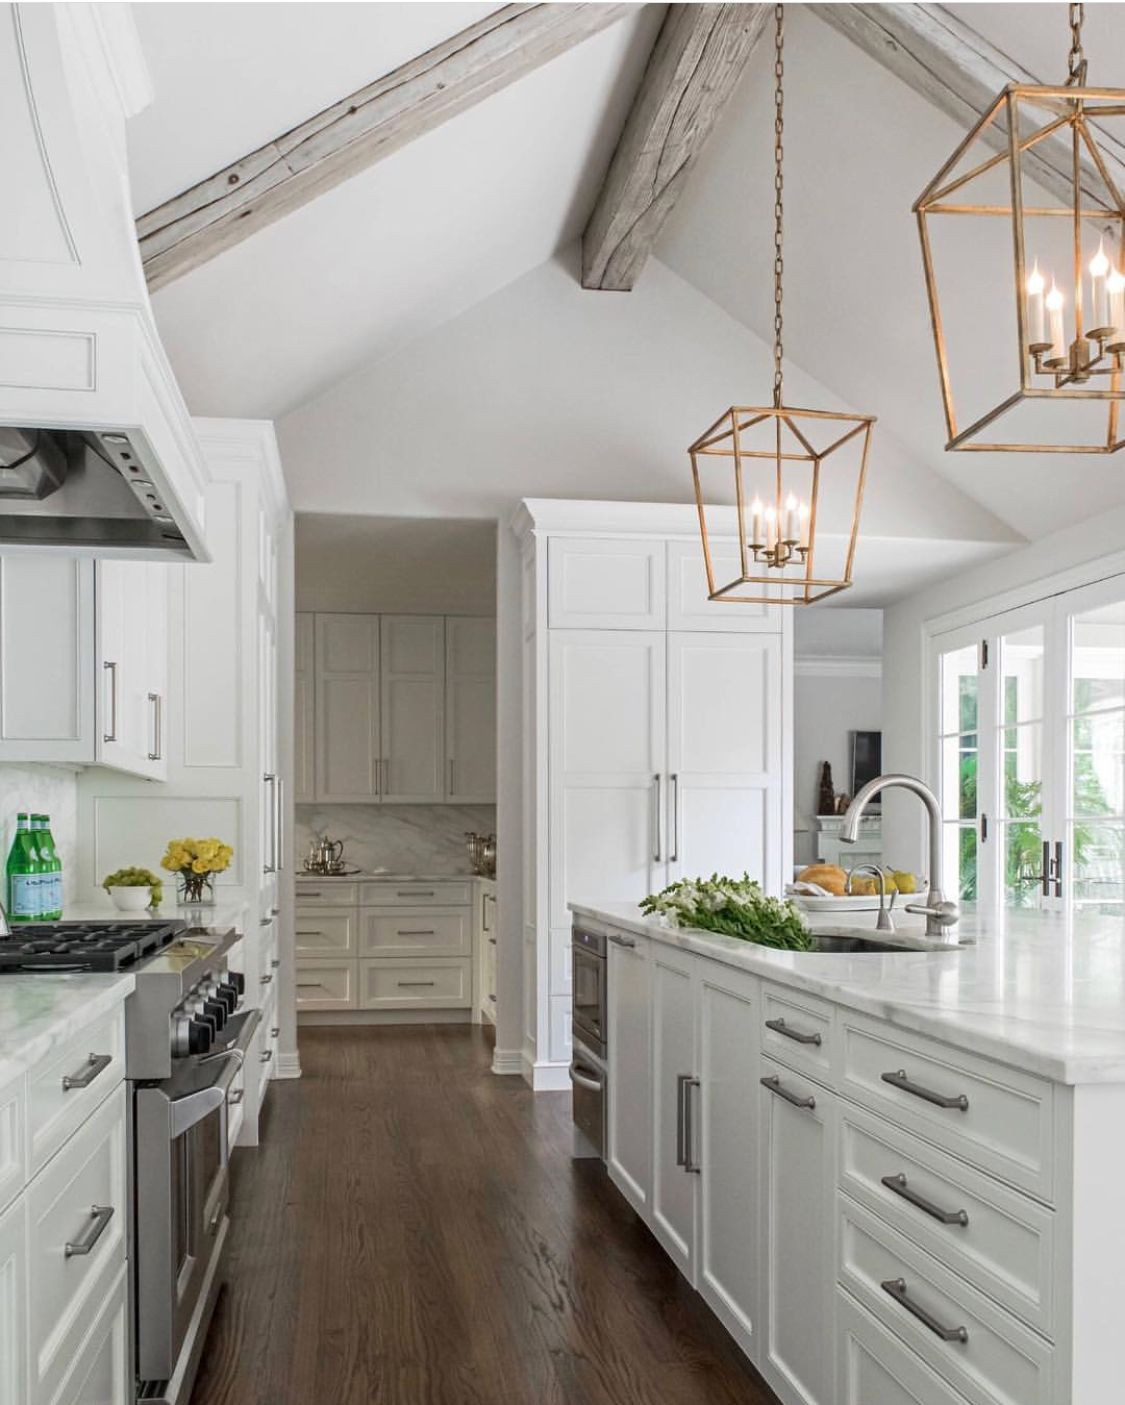 Best Pin By Hollyreavesrealtor On Kitchens With Images 400 x 300